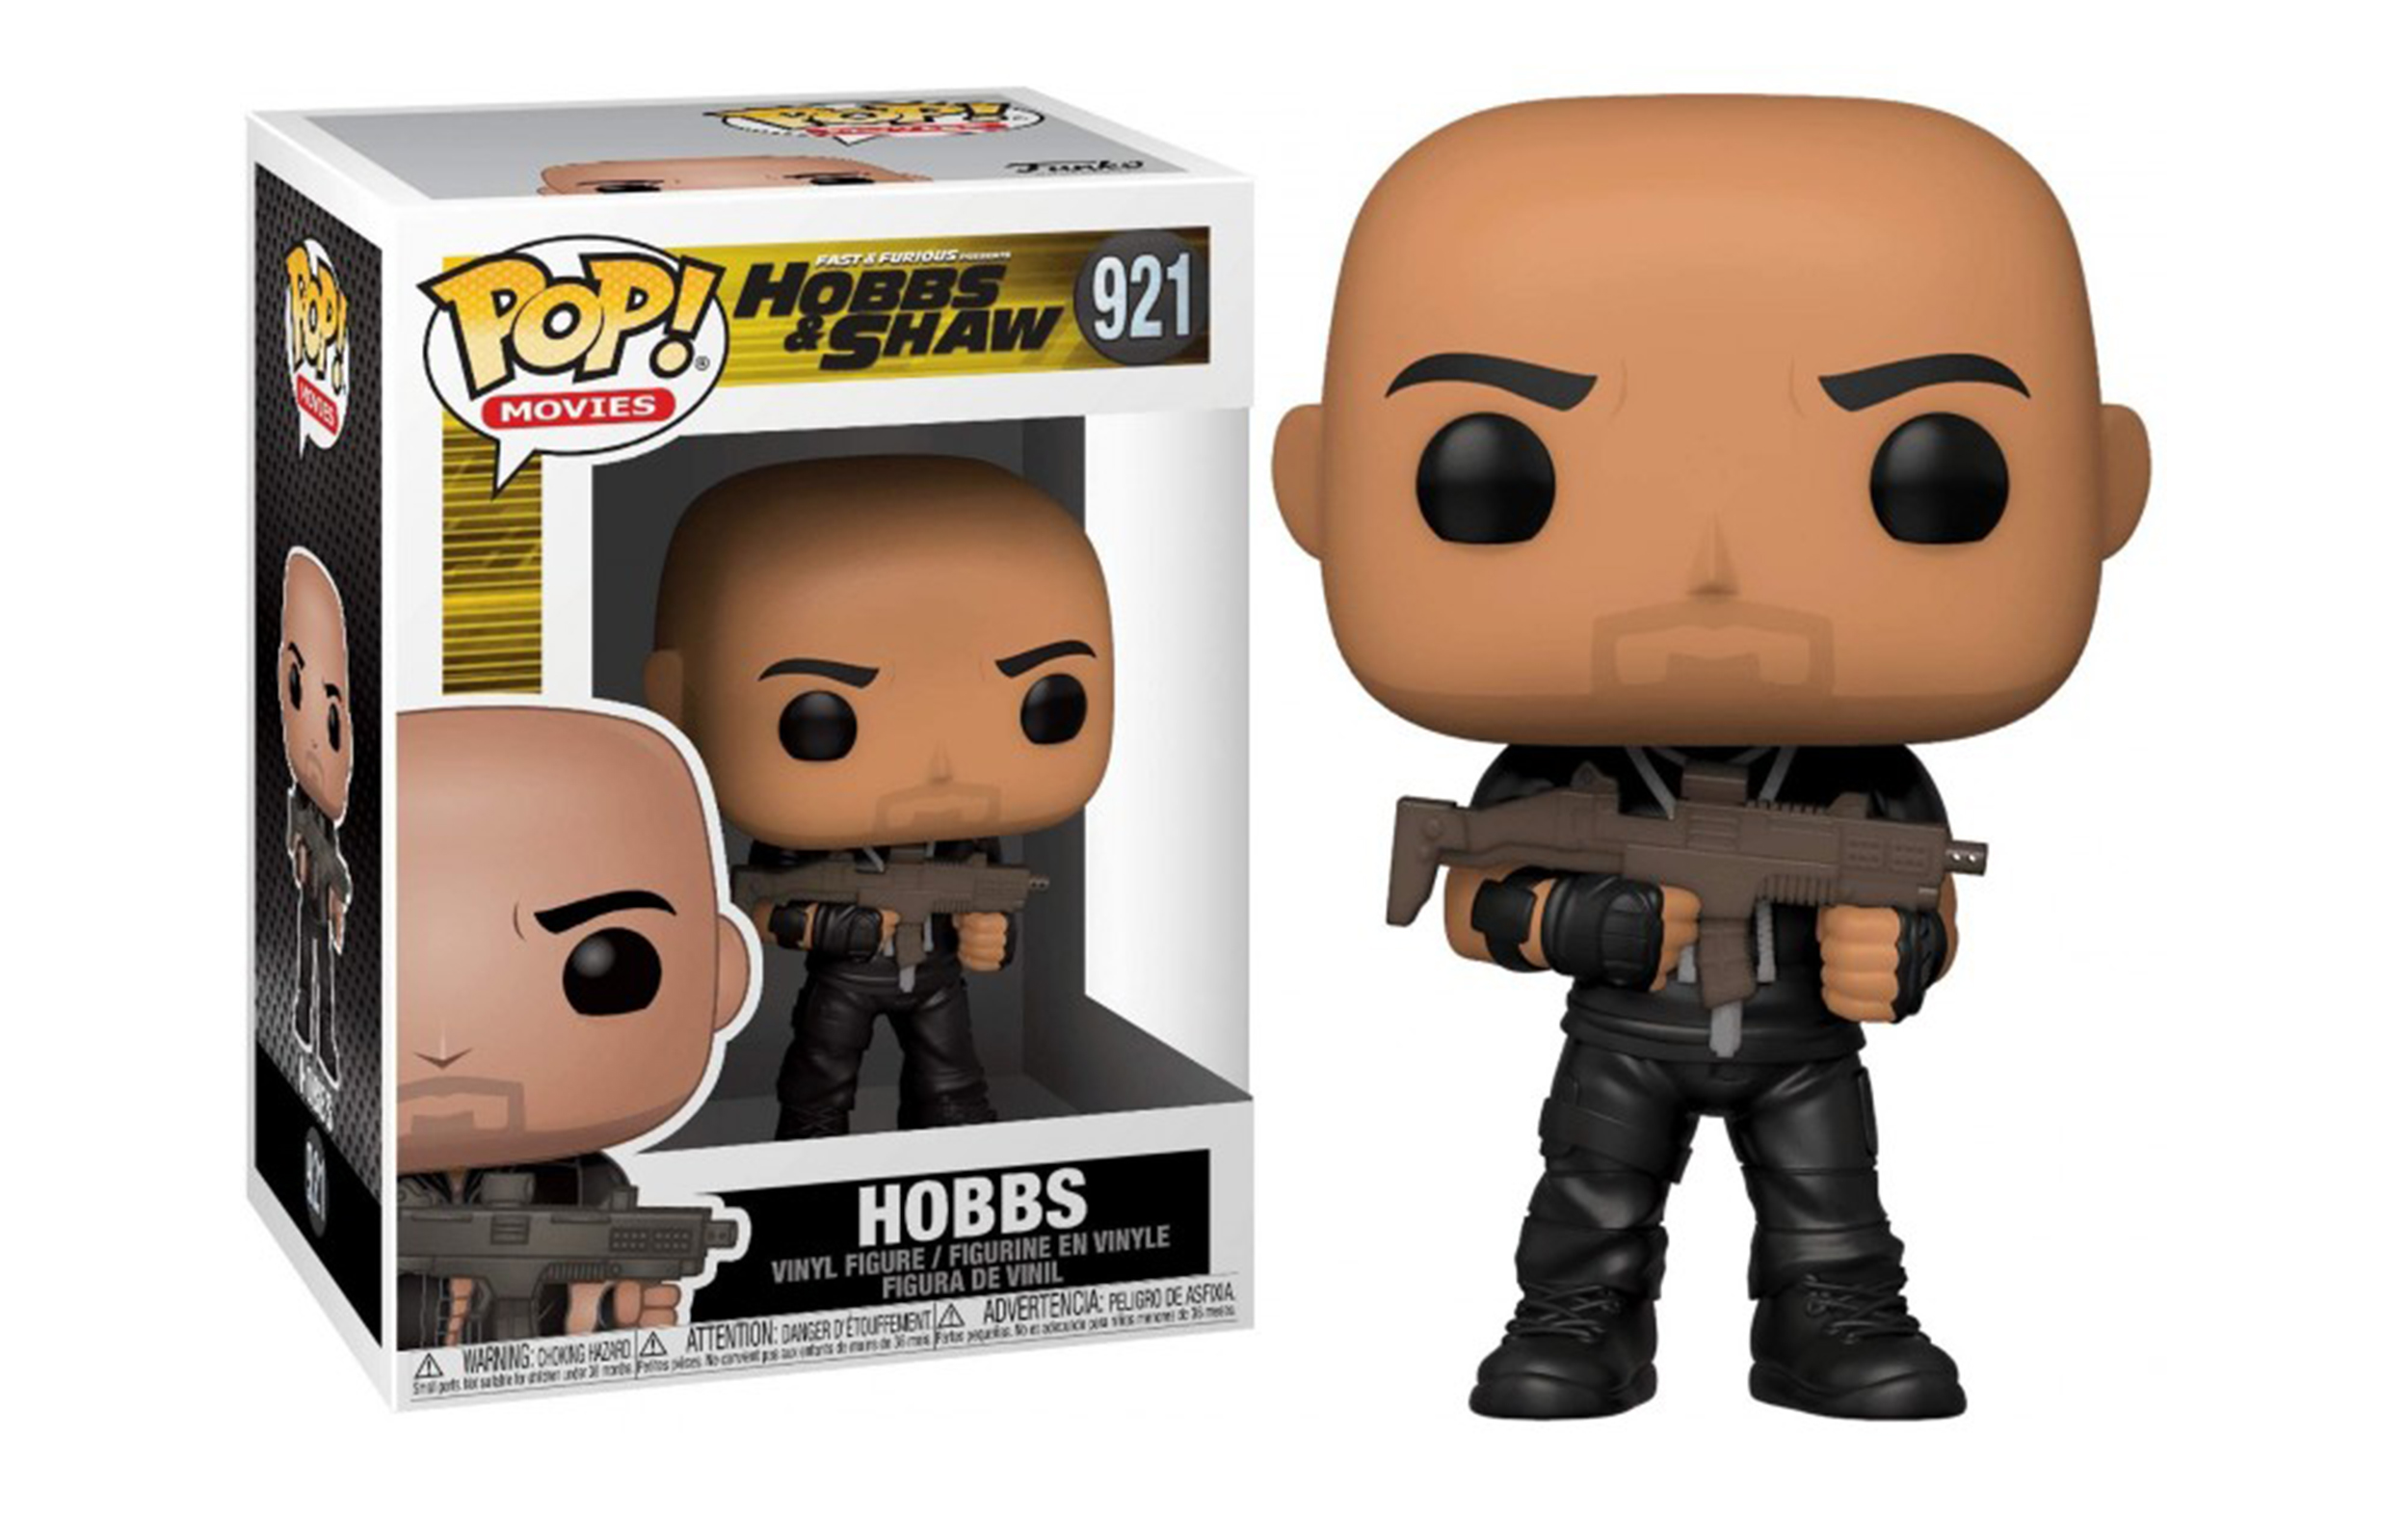 Fast And Furious Hobbs and Shaw Hobbs 921 Funko POP Vinyl Figure